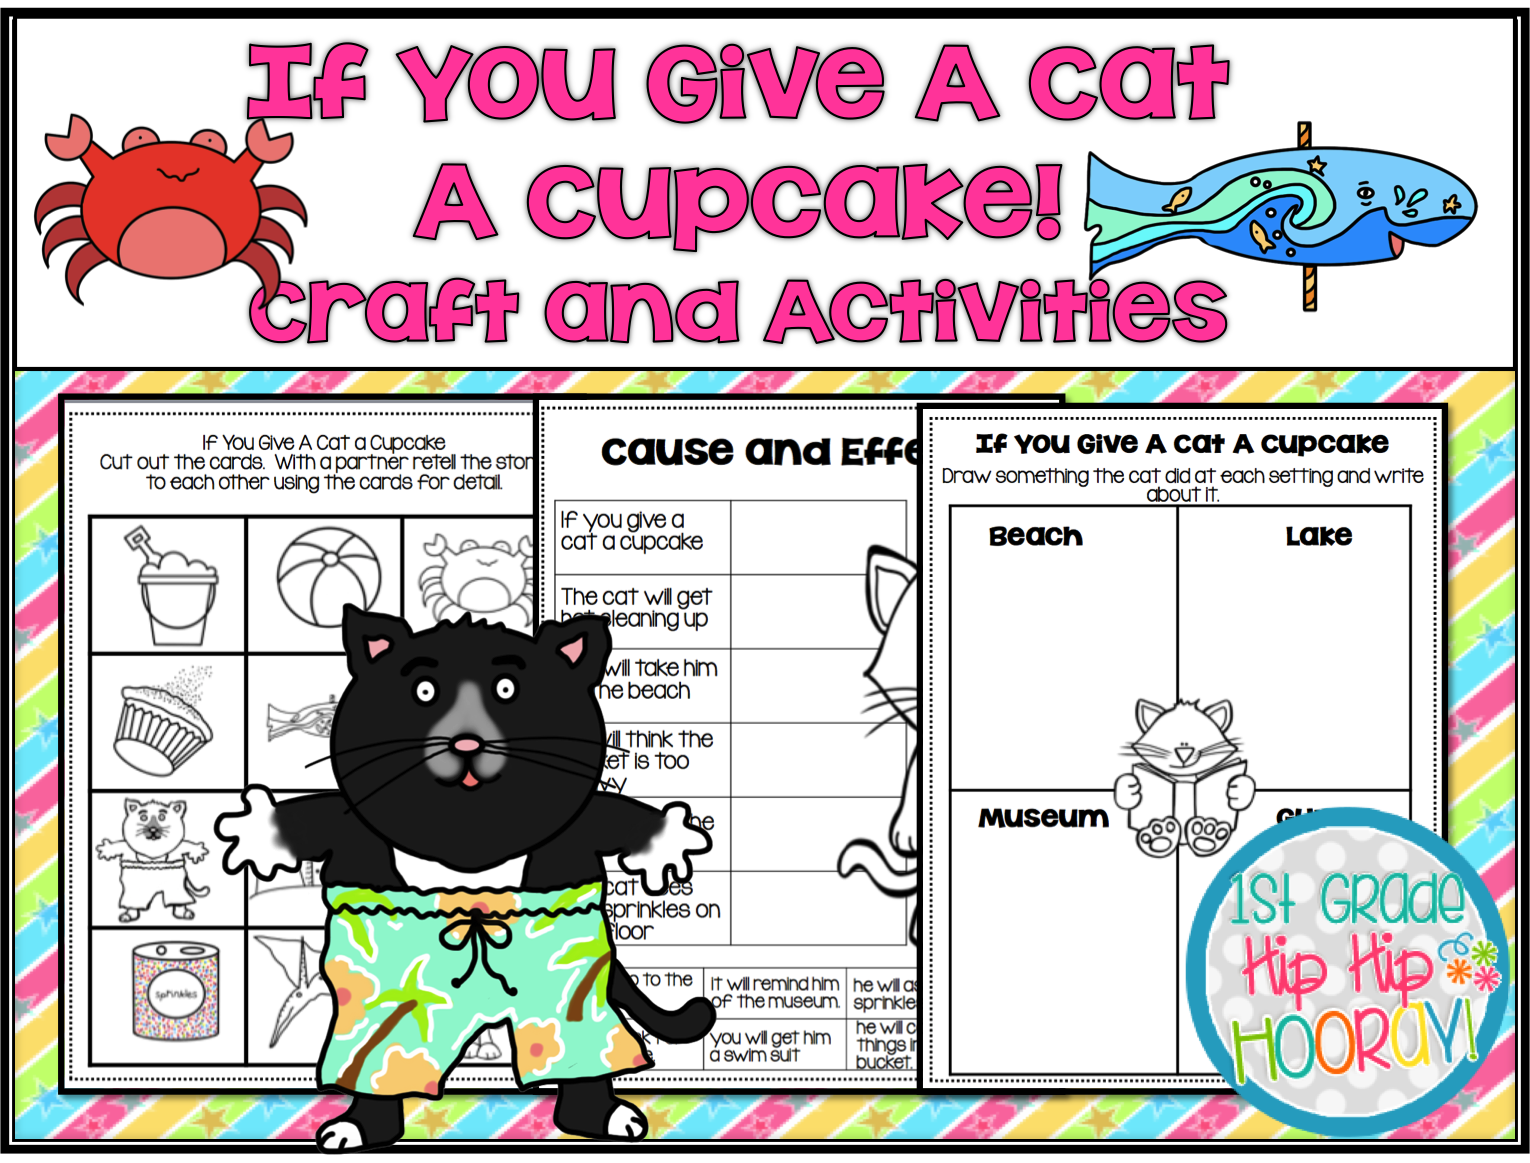 1st Grade Hip Hip Hooray If You Give A Cat A Cupcake